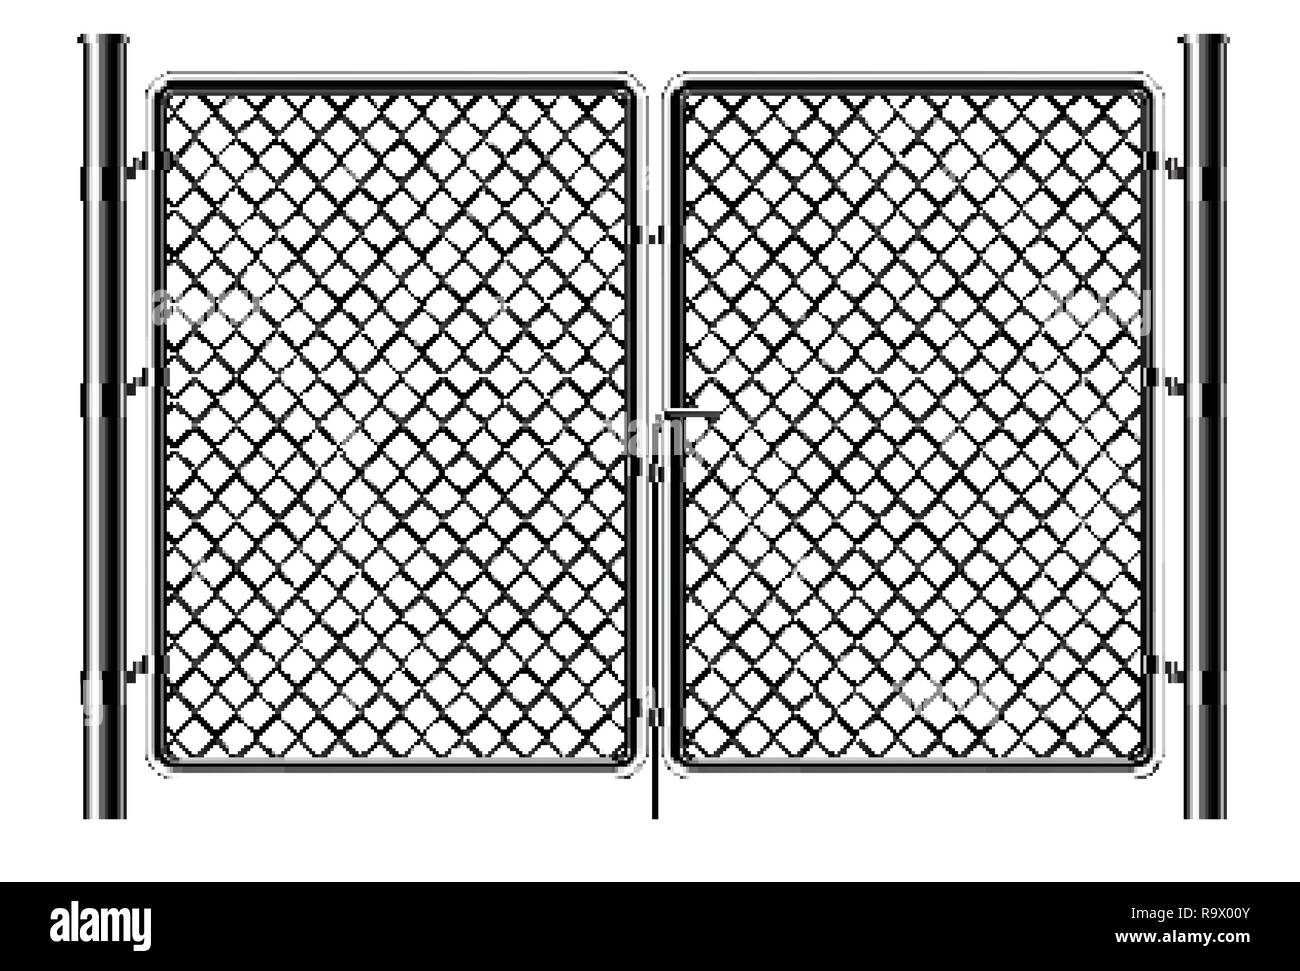 Chain Link Fence Art Designs